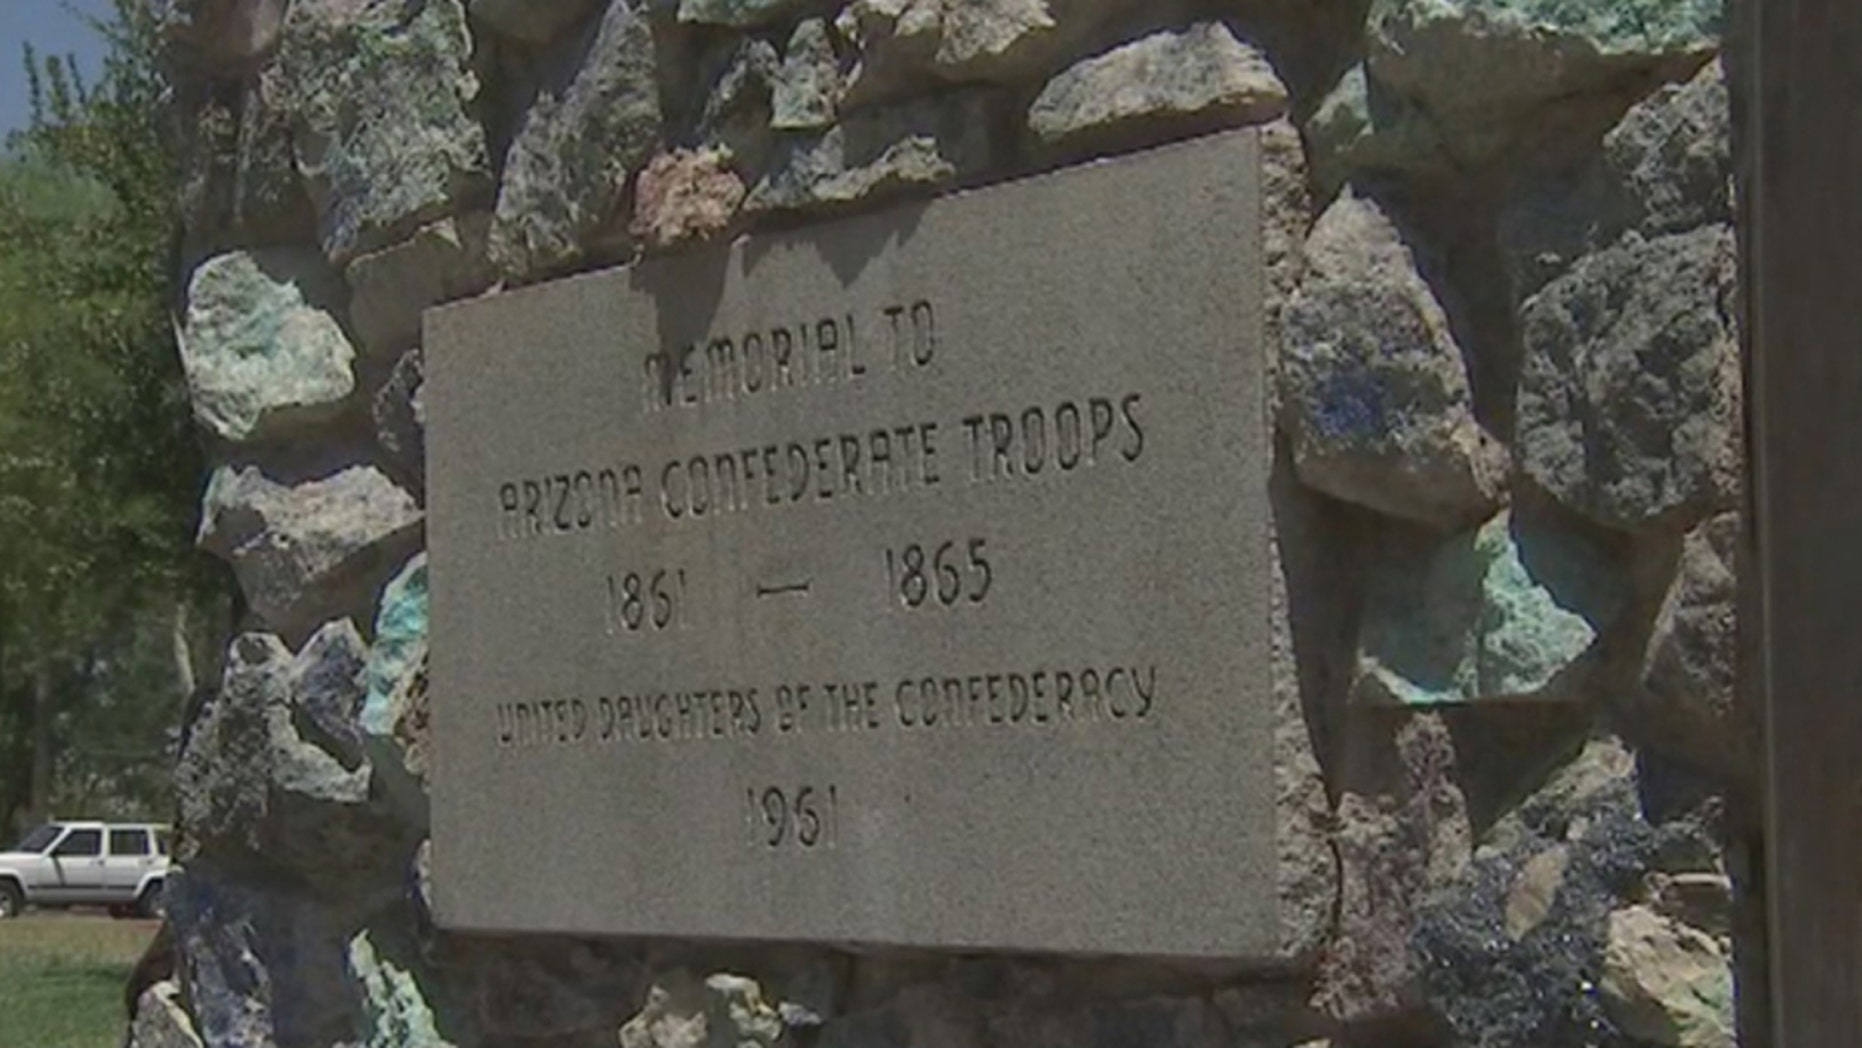 A group wants to start removing Confederate markers from public land in Arizona.